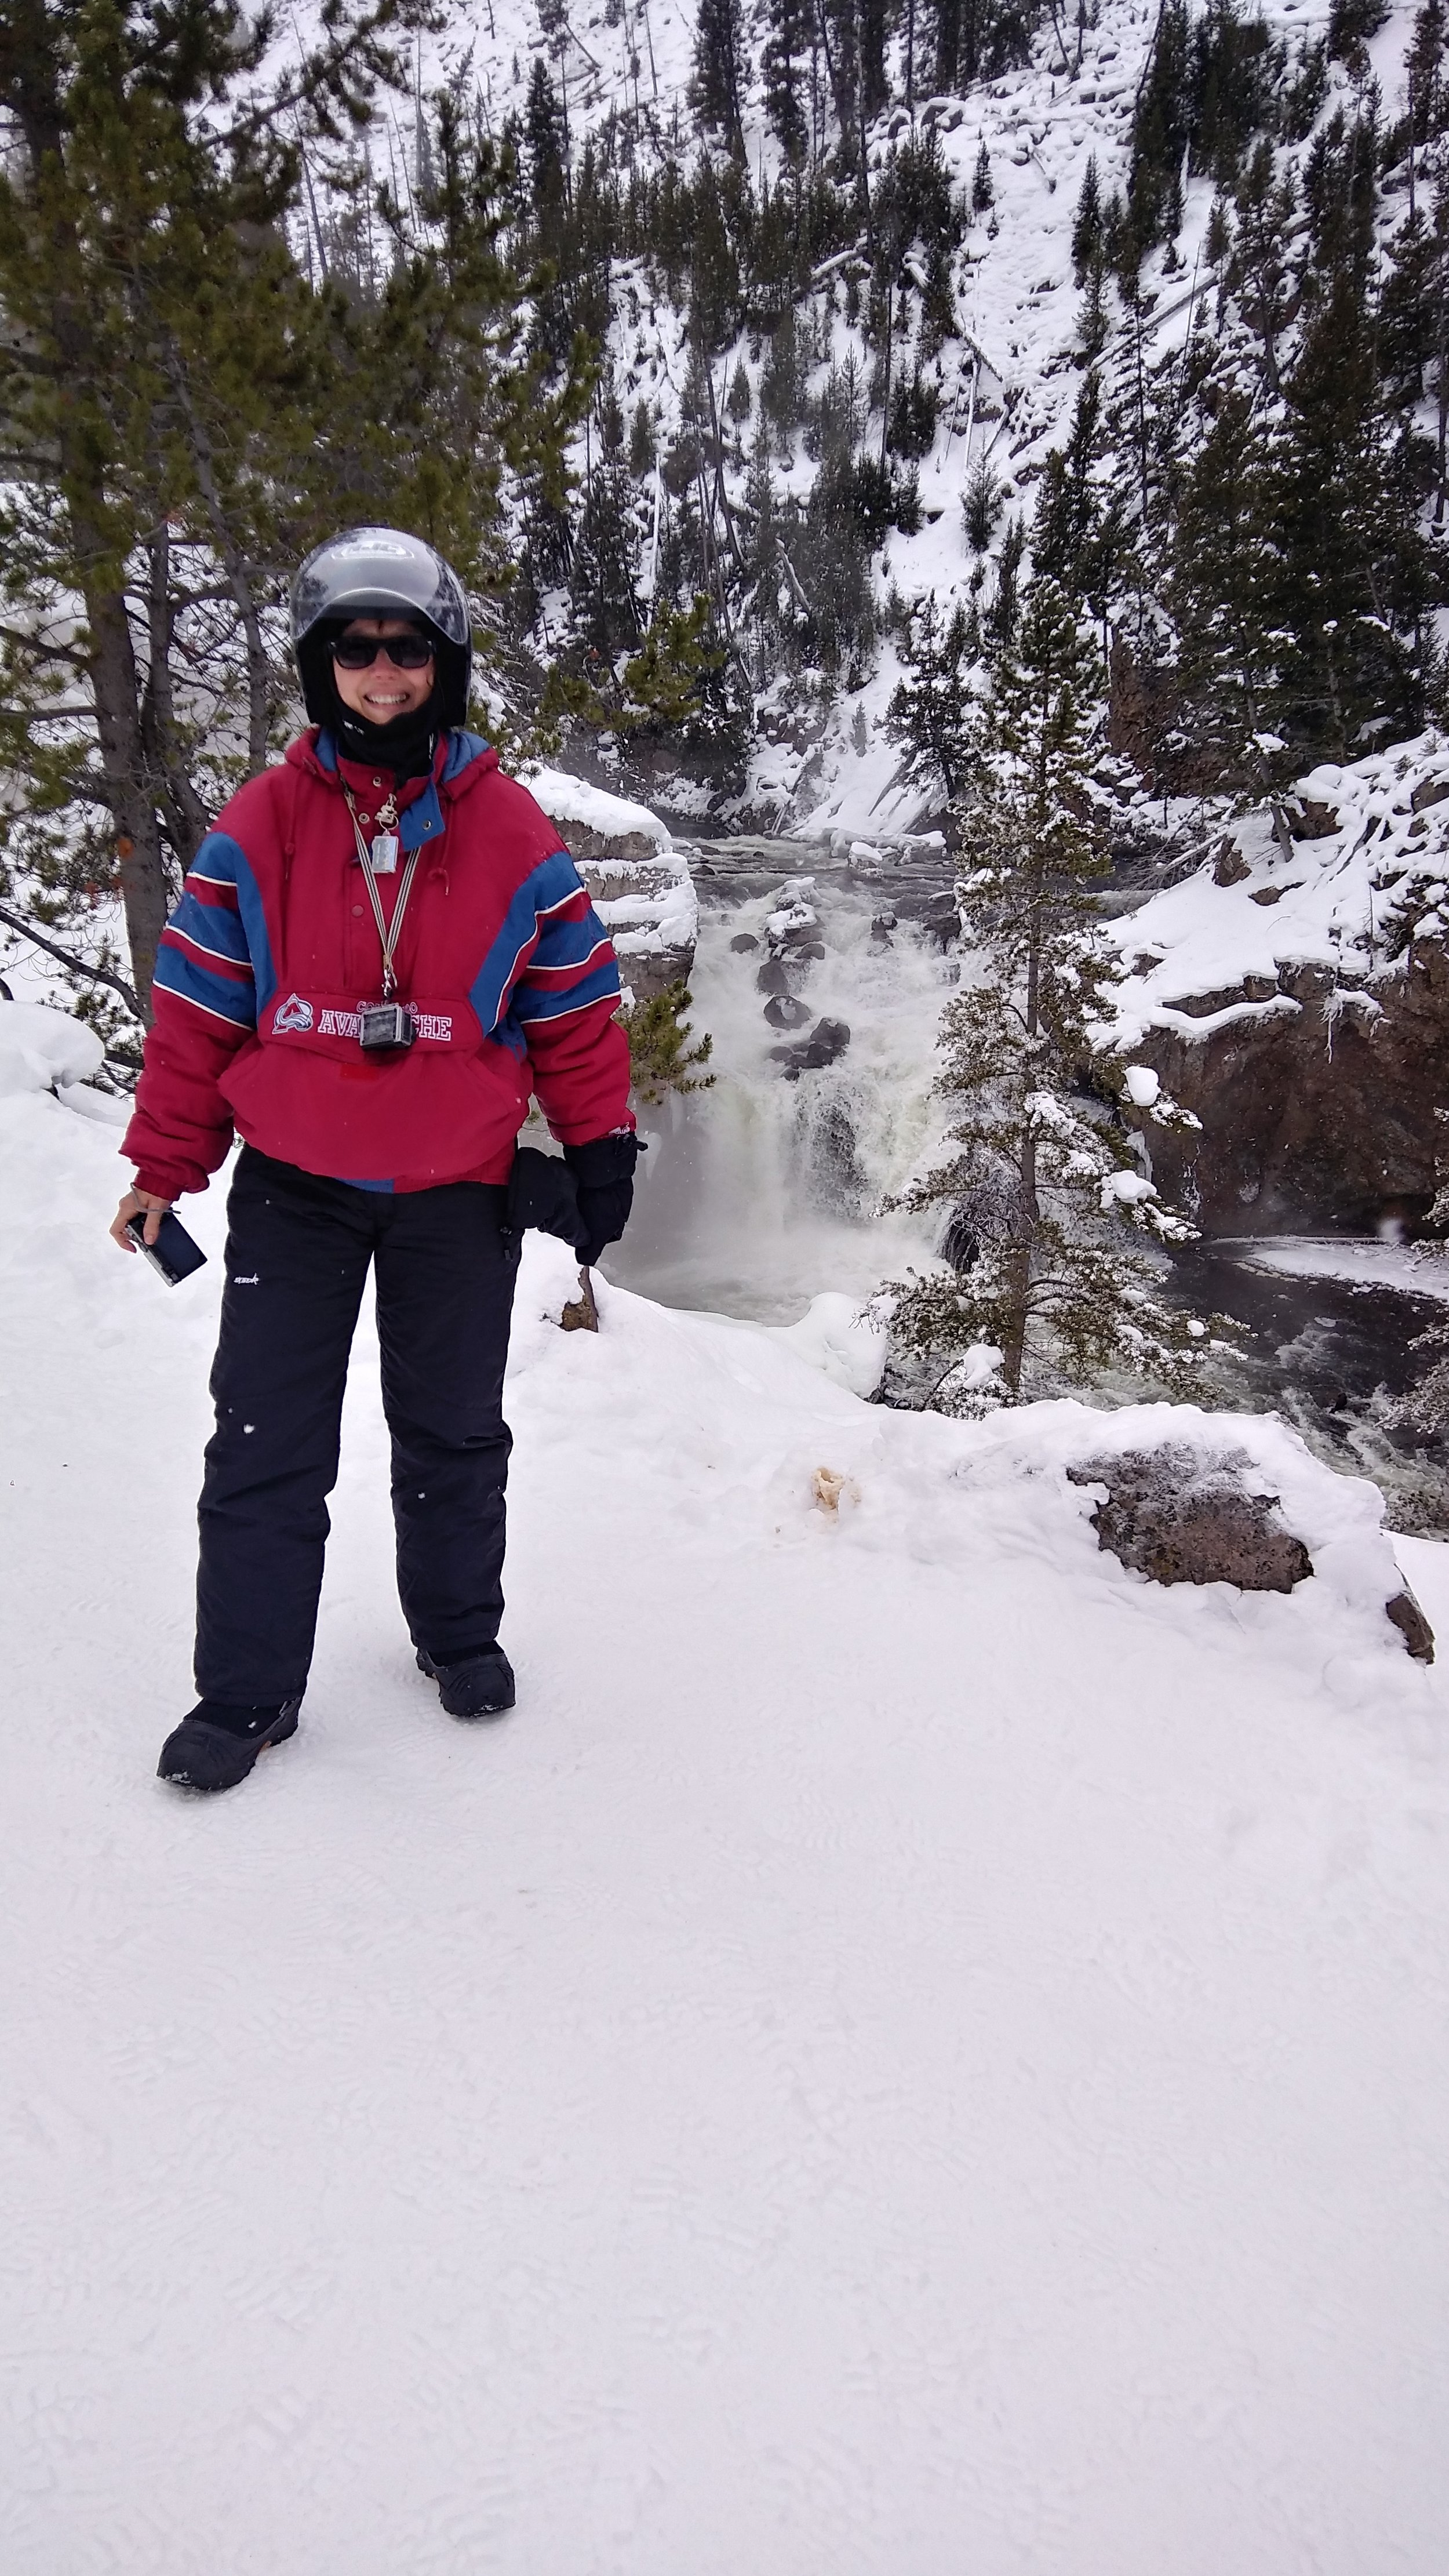 At the glorious Firehole Falls in Yellowstone National Park